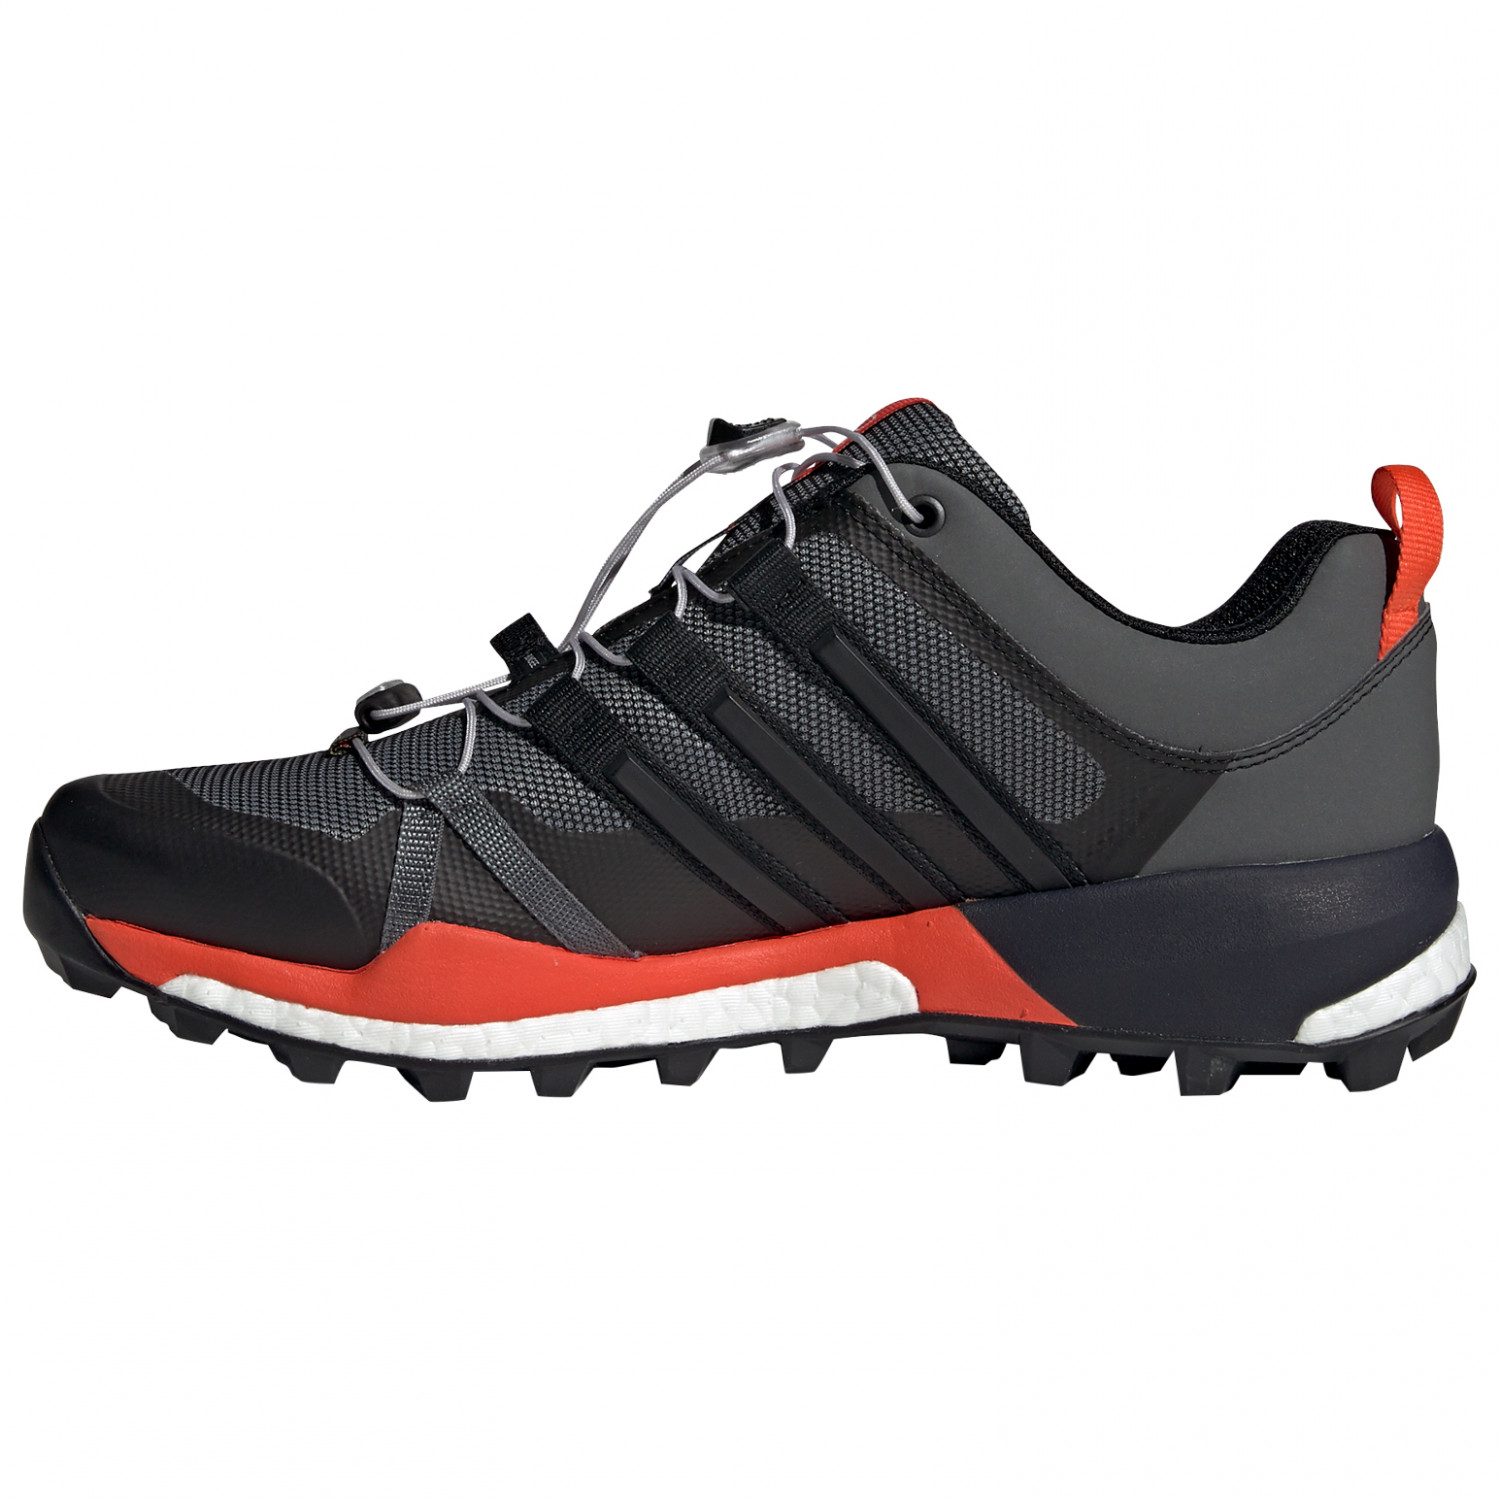 Adidas Terrex Skychaser GTX - Approach Shoes Men's | Free